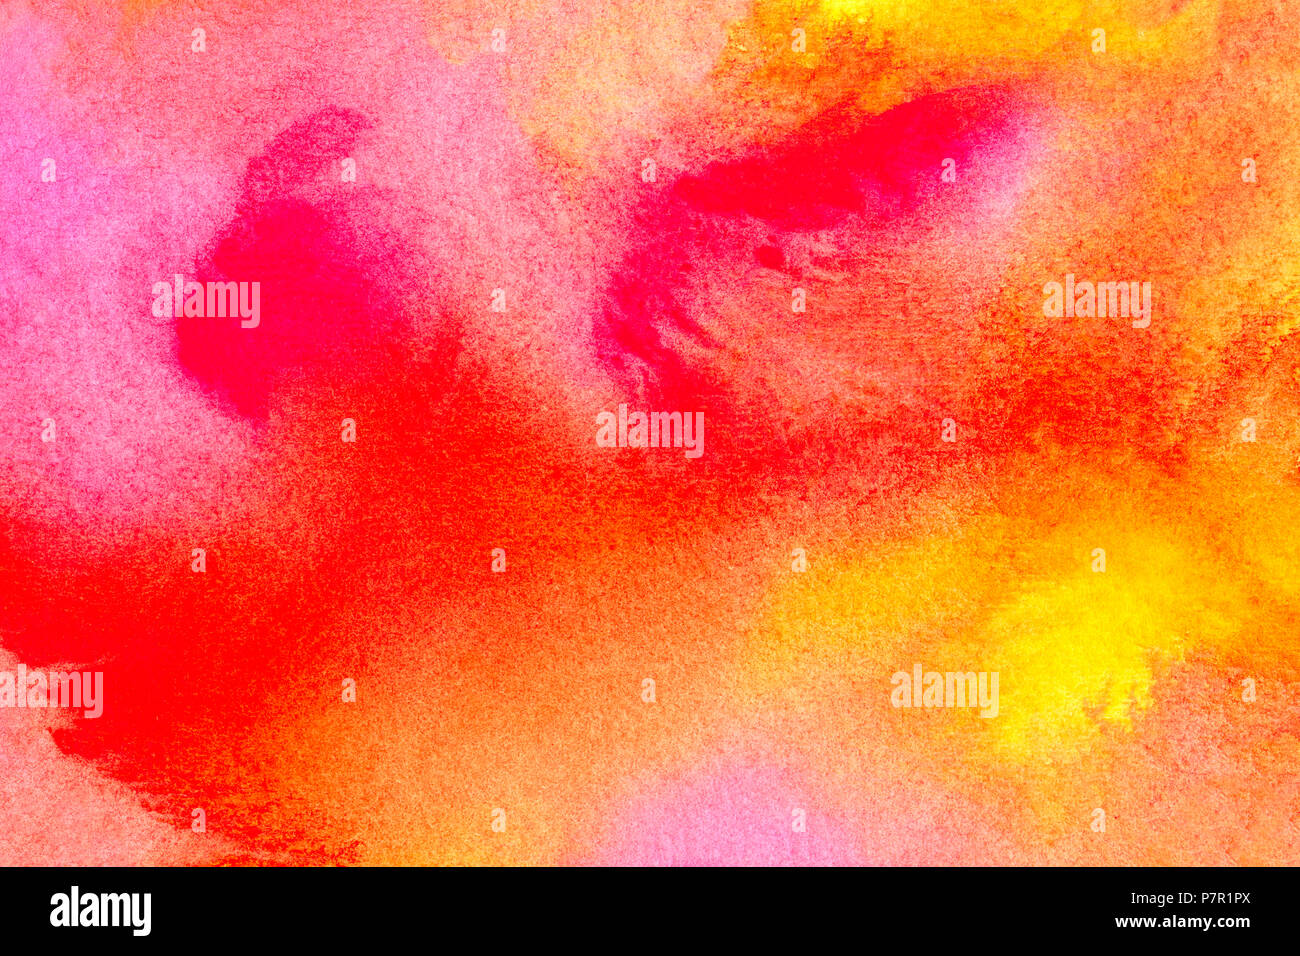 Download Pretty Vibrant Backgrounds JPG